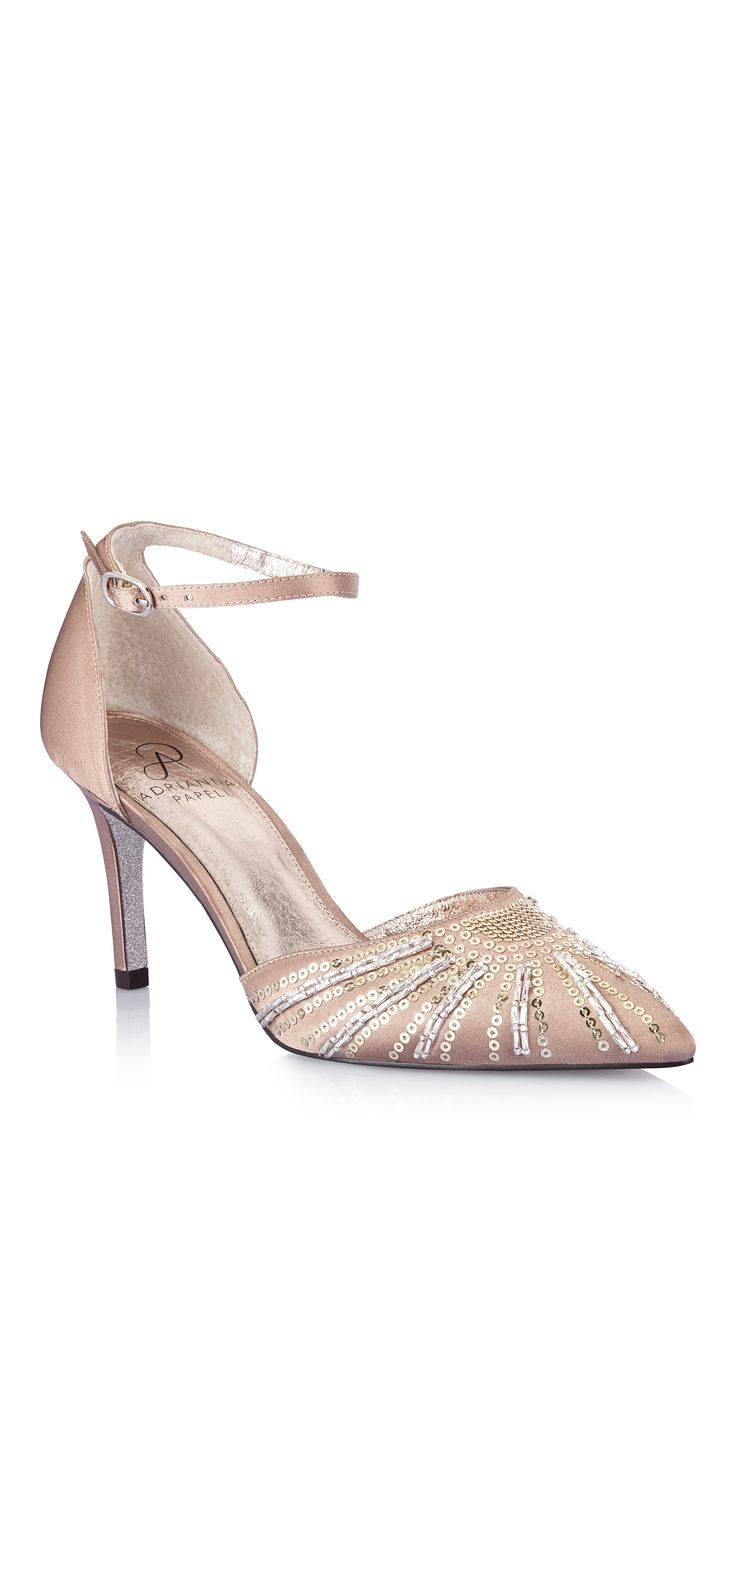 """Old Hollywood-style glamour and a luxe satin material make this pointy-toe evening pump a standout. Strips of beading and sequins grace the front of the foot adding texture, while a thin ankle strap softens the profile. 3"""" heel."""